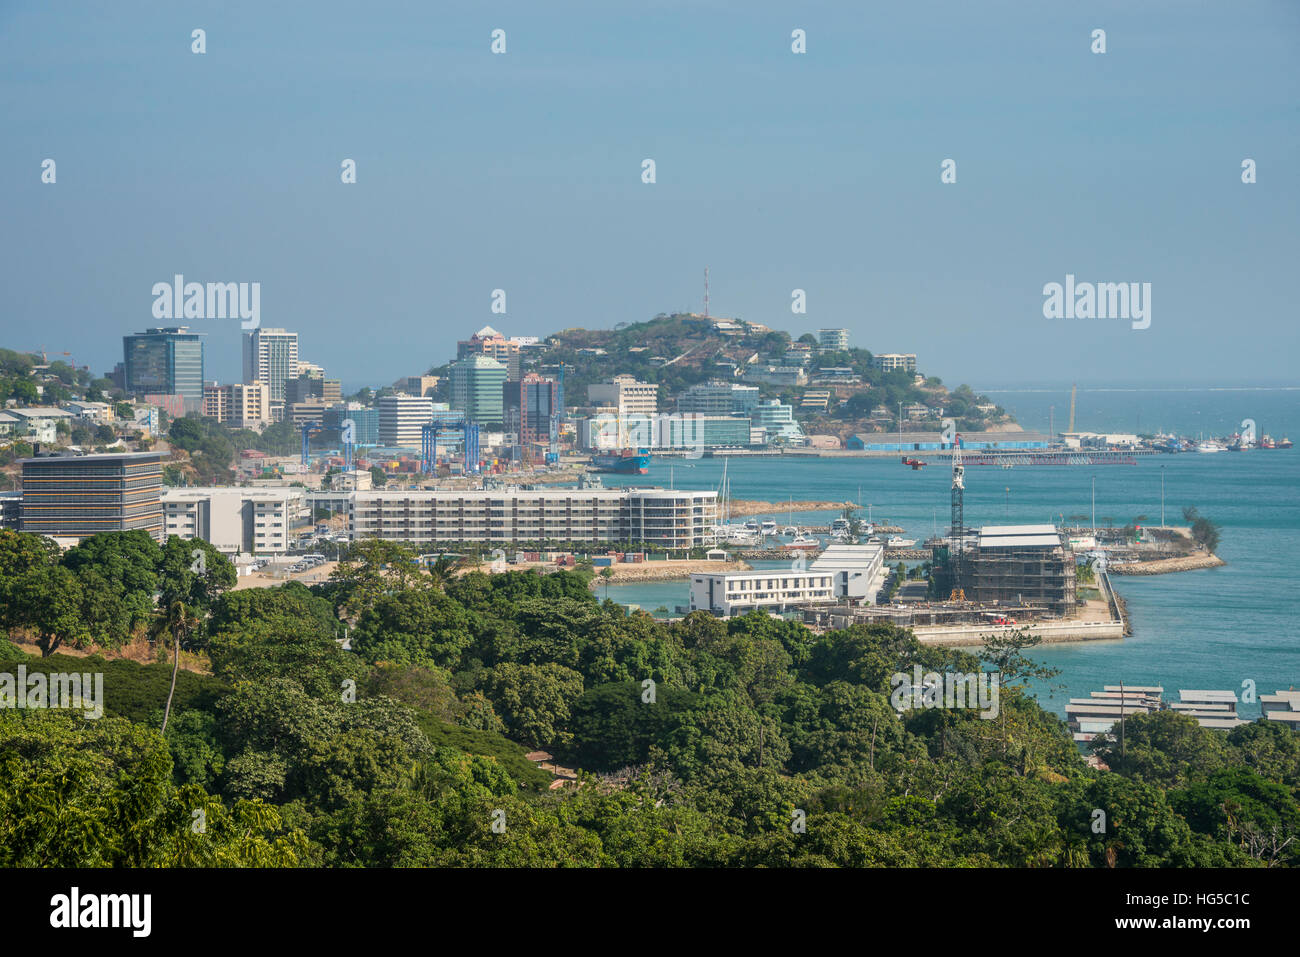 View over Port Moresby, Papua New Guinea, Pacific - Stock Image